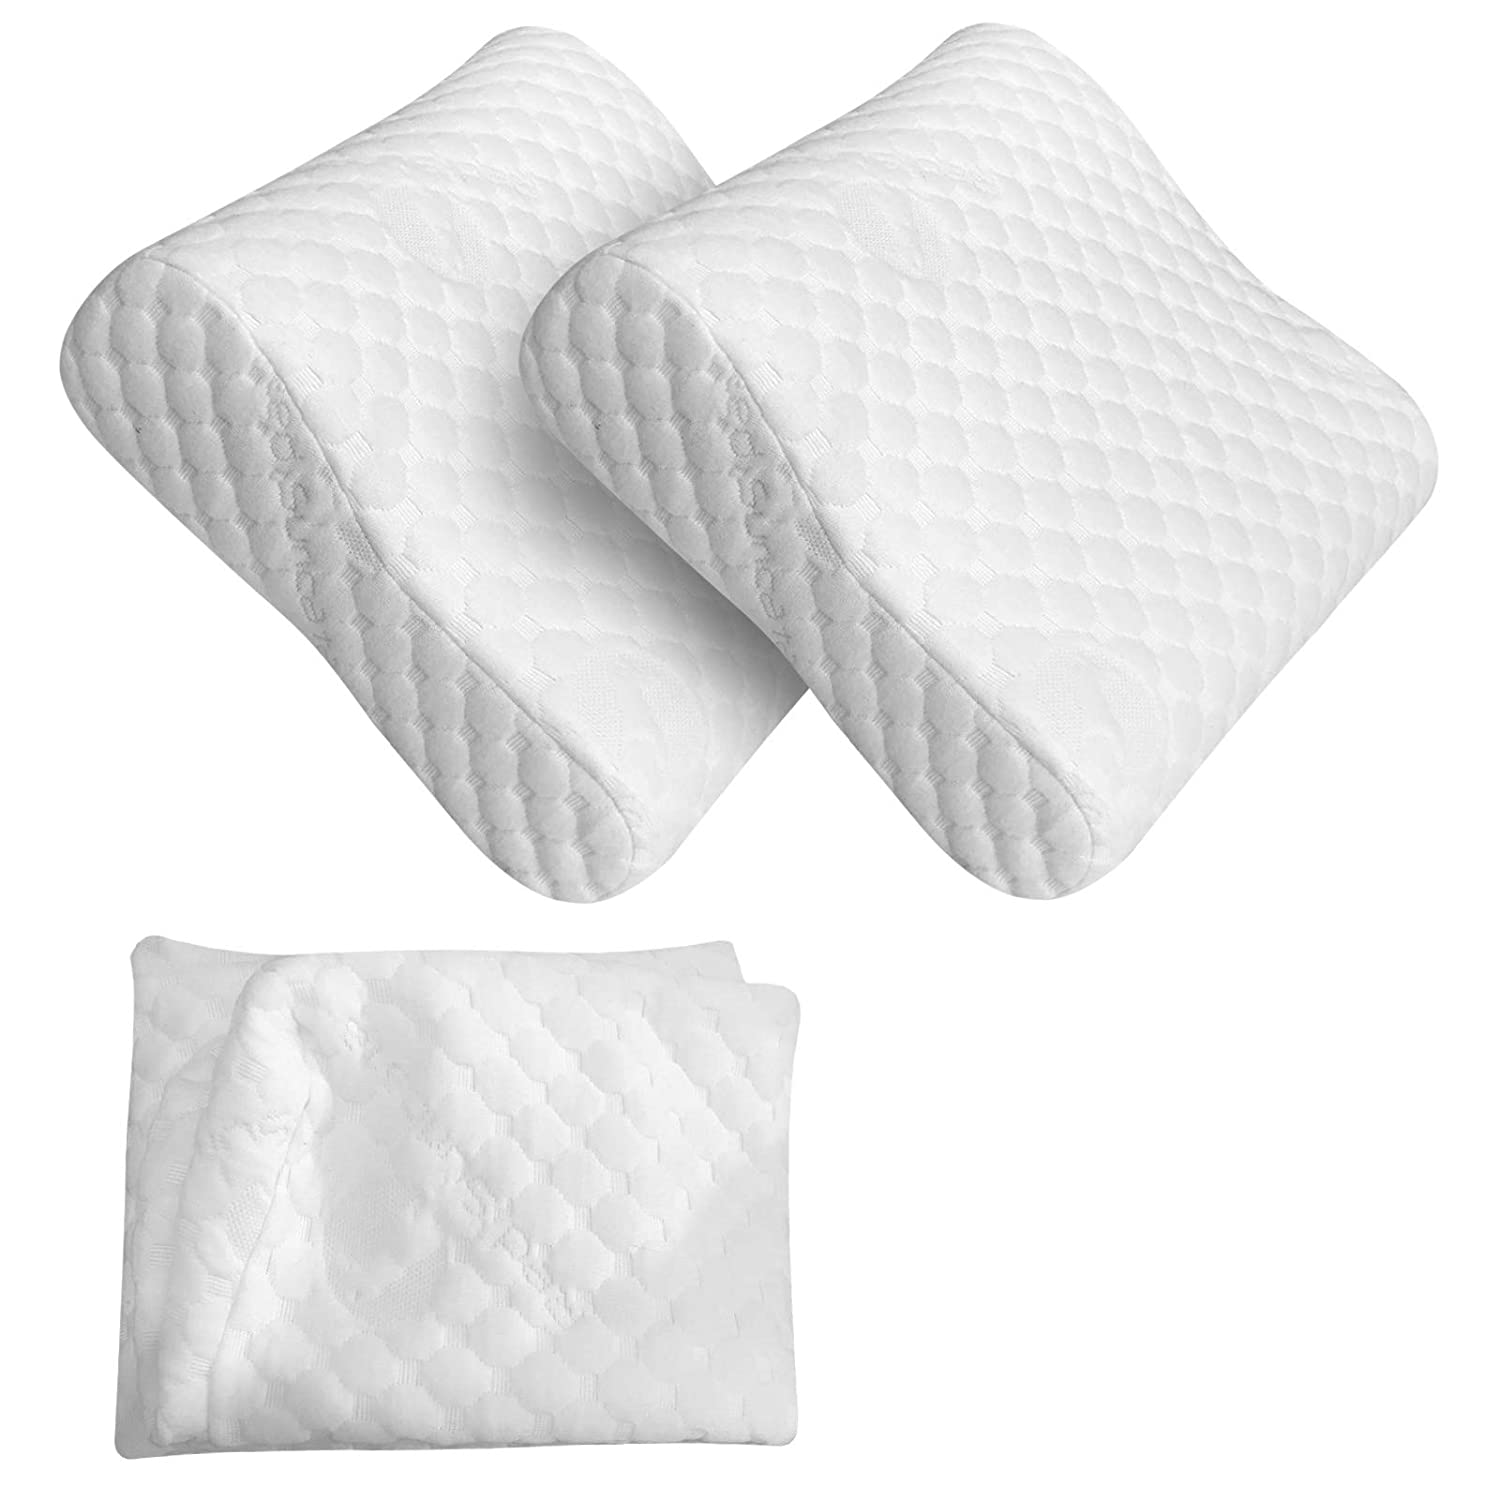 Red Suricata 2 Travel Contour Pillows /& Double Pillowcase Bundle Firm 3 Firmness Levels Red Allegory Bamboo Cover Compact Therapeutic Memory Foam Travel Pillow Connect 2 for Full Size Pillow